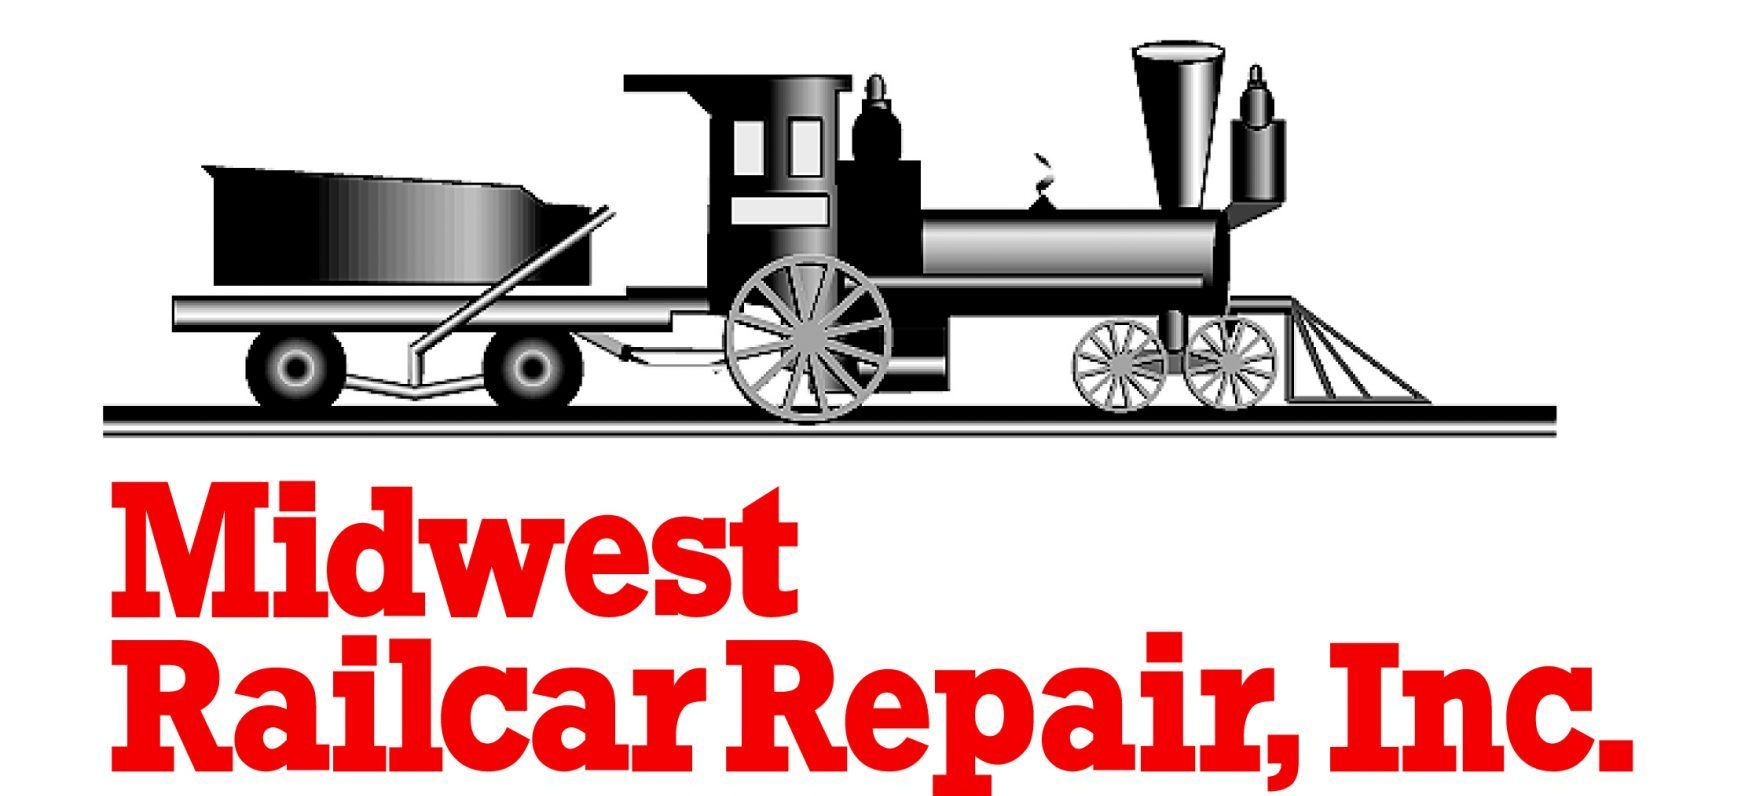 Midwest Railcar Repair logo